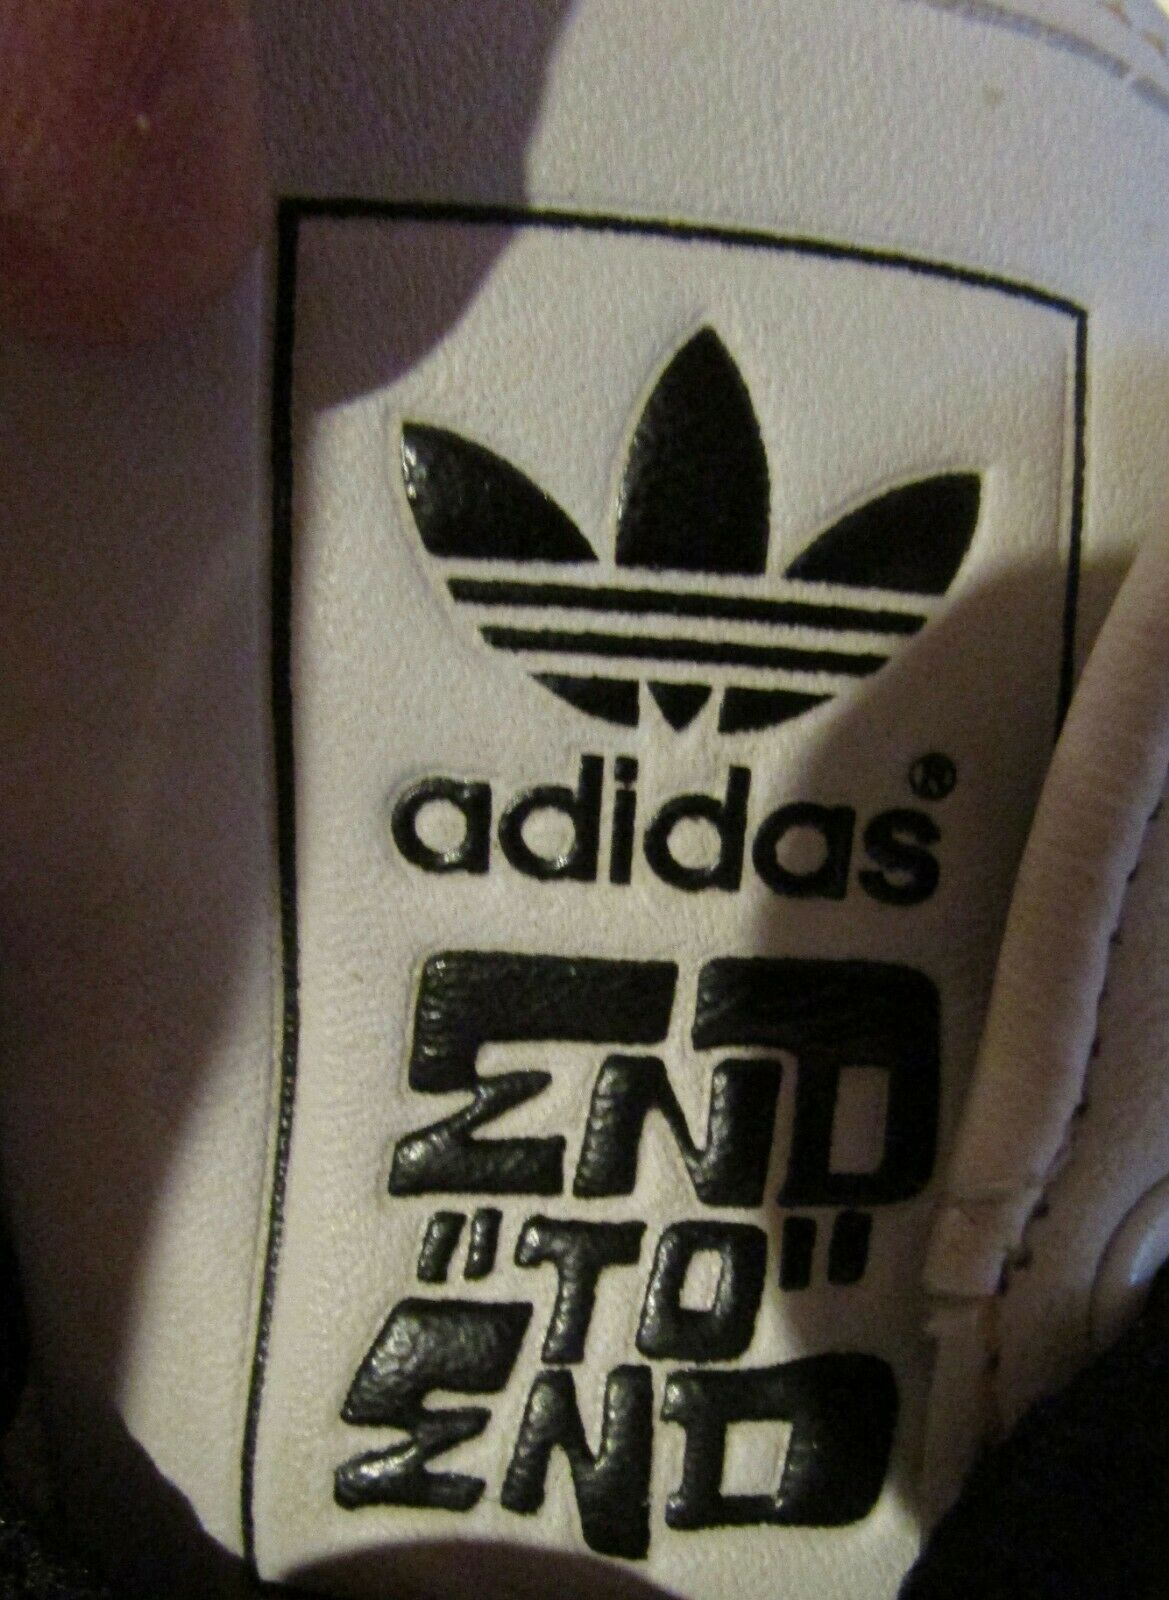 Adidas Stan a Joe Graffiti Graffiti Graffiti End Smith End zapatillas Talla 10  17221 Rime c3e84b